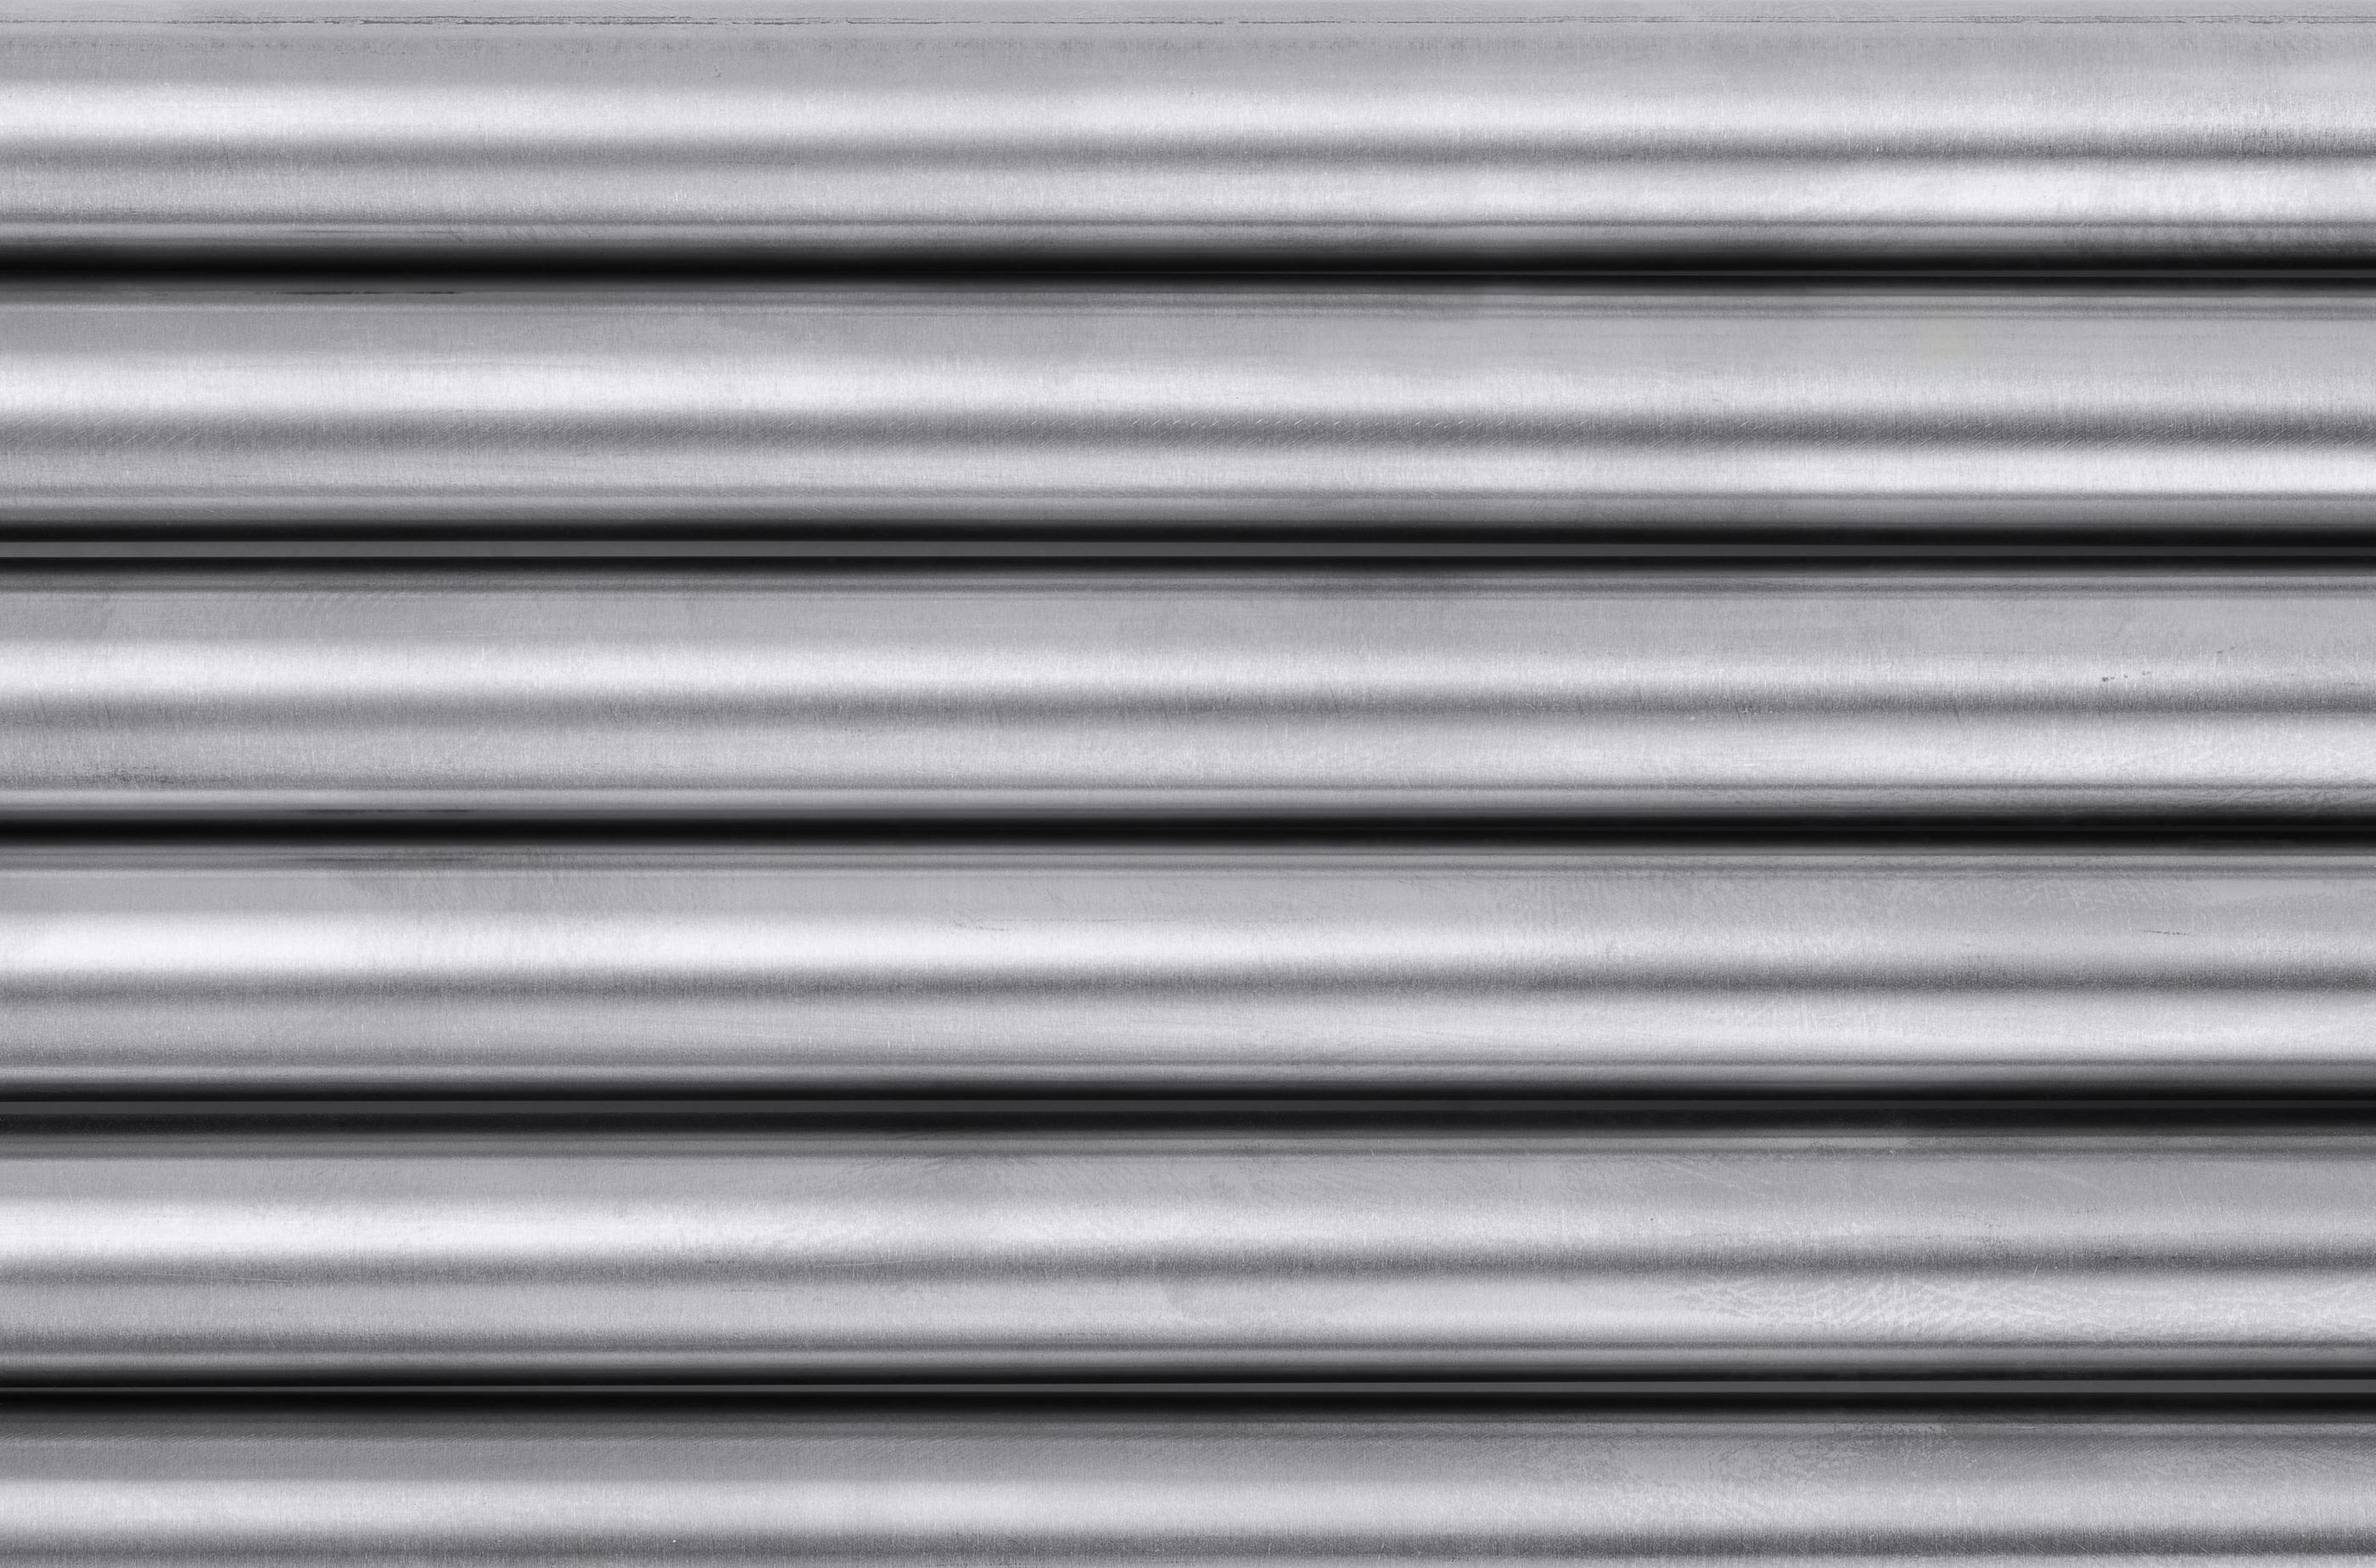 Shiny steel pipes background.jpg